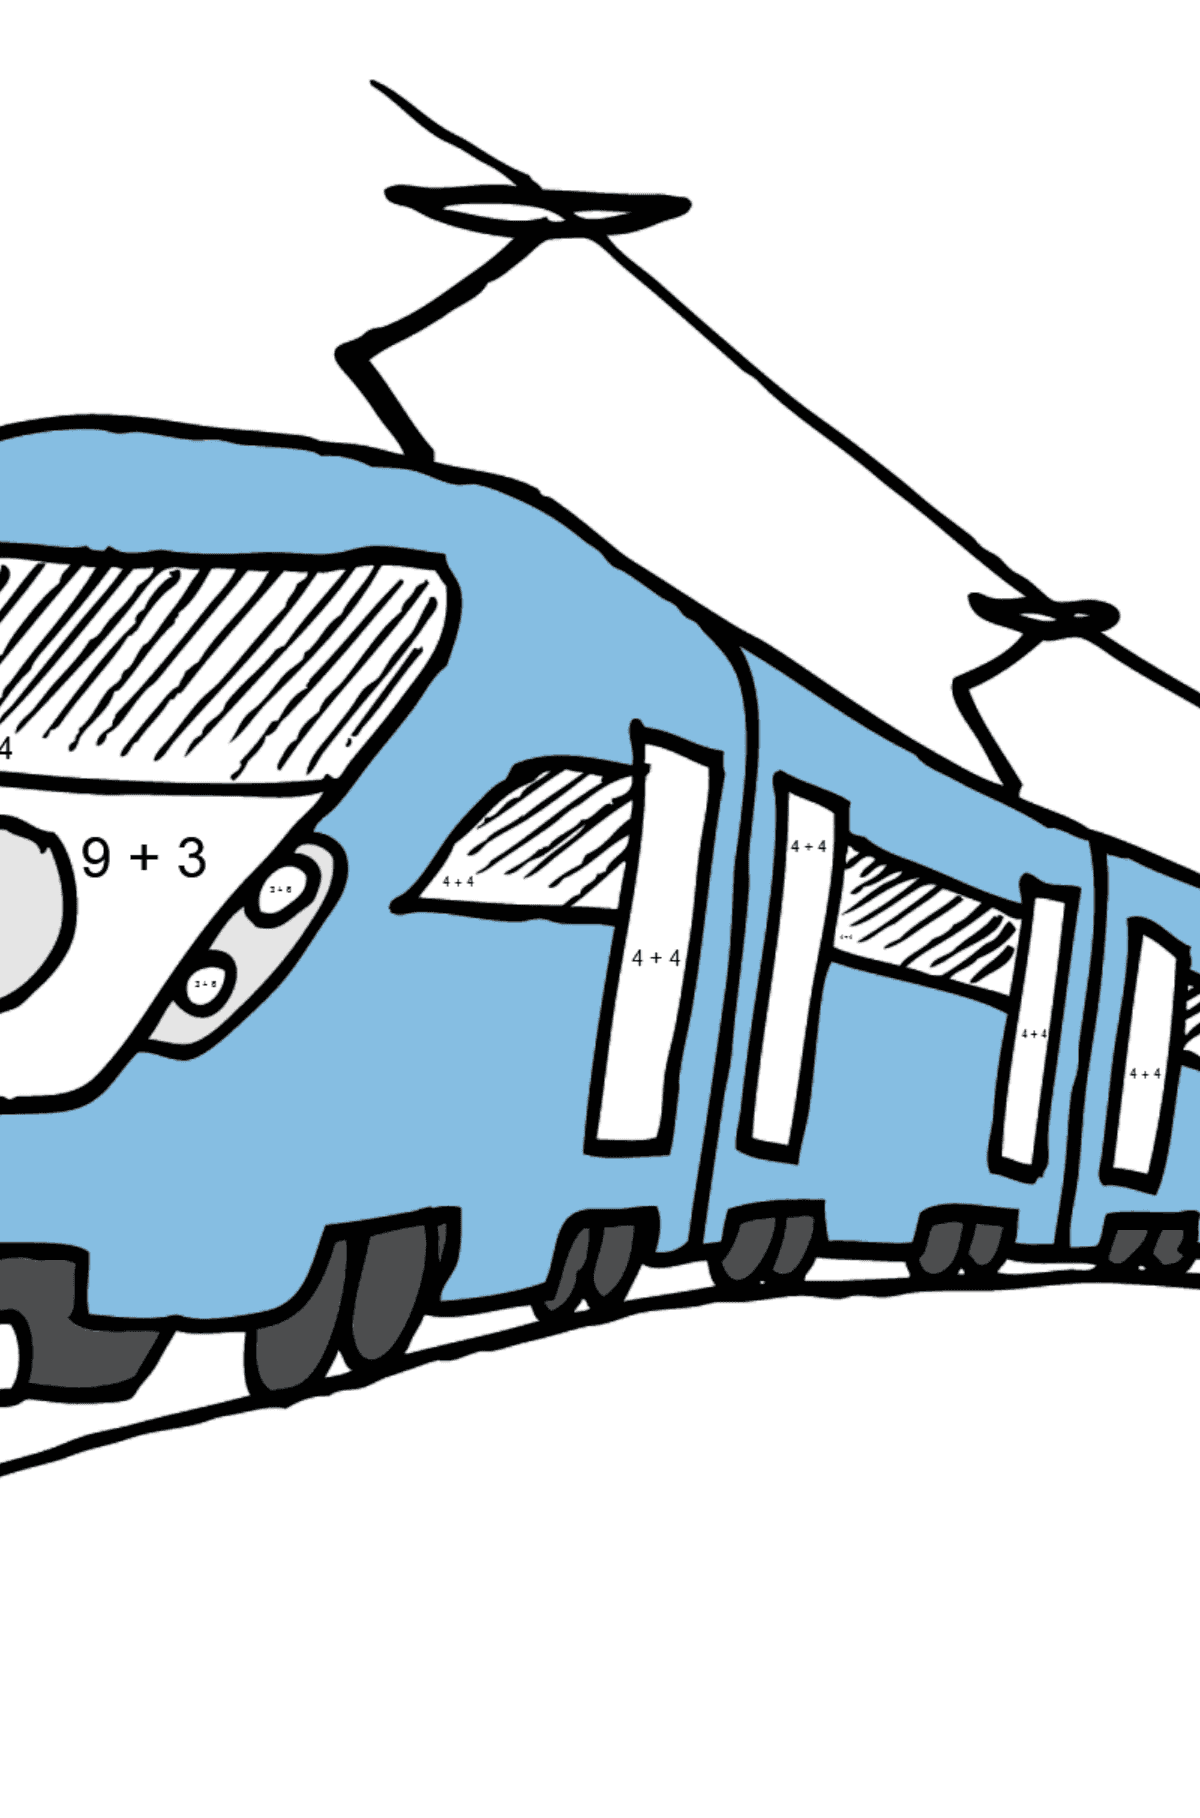 Coloring Page - A Passenger Train - Math Coloring - Addition for Kids